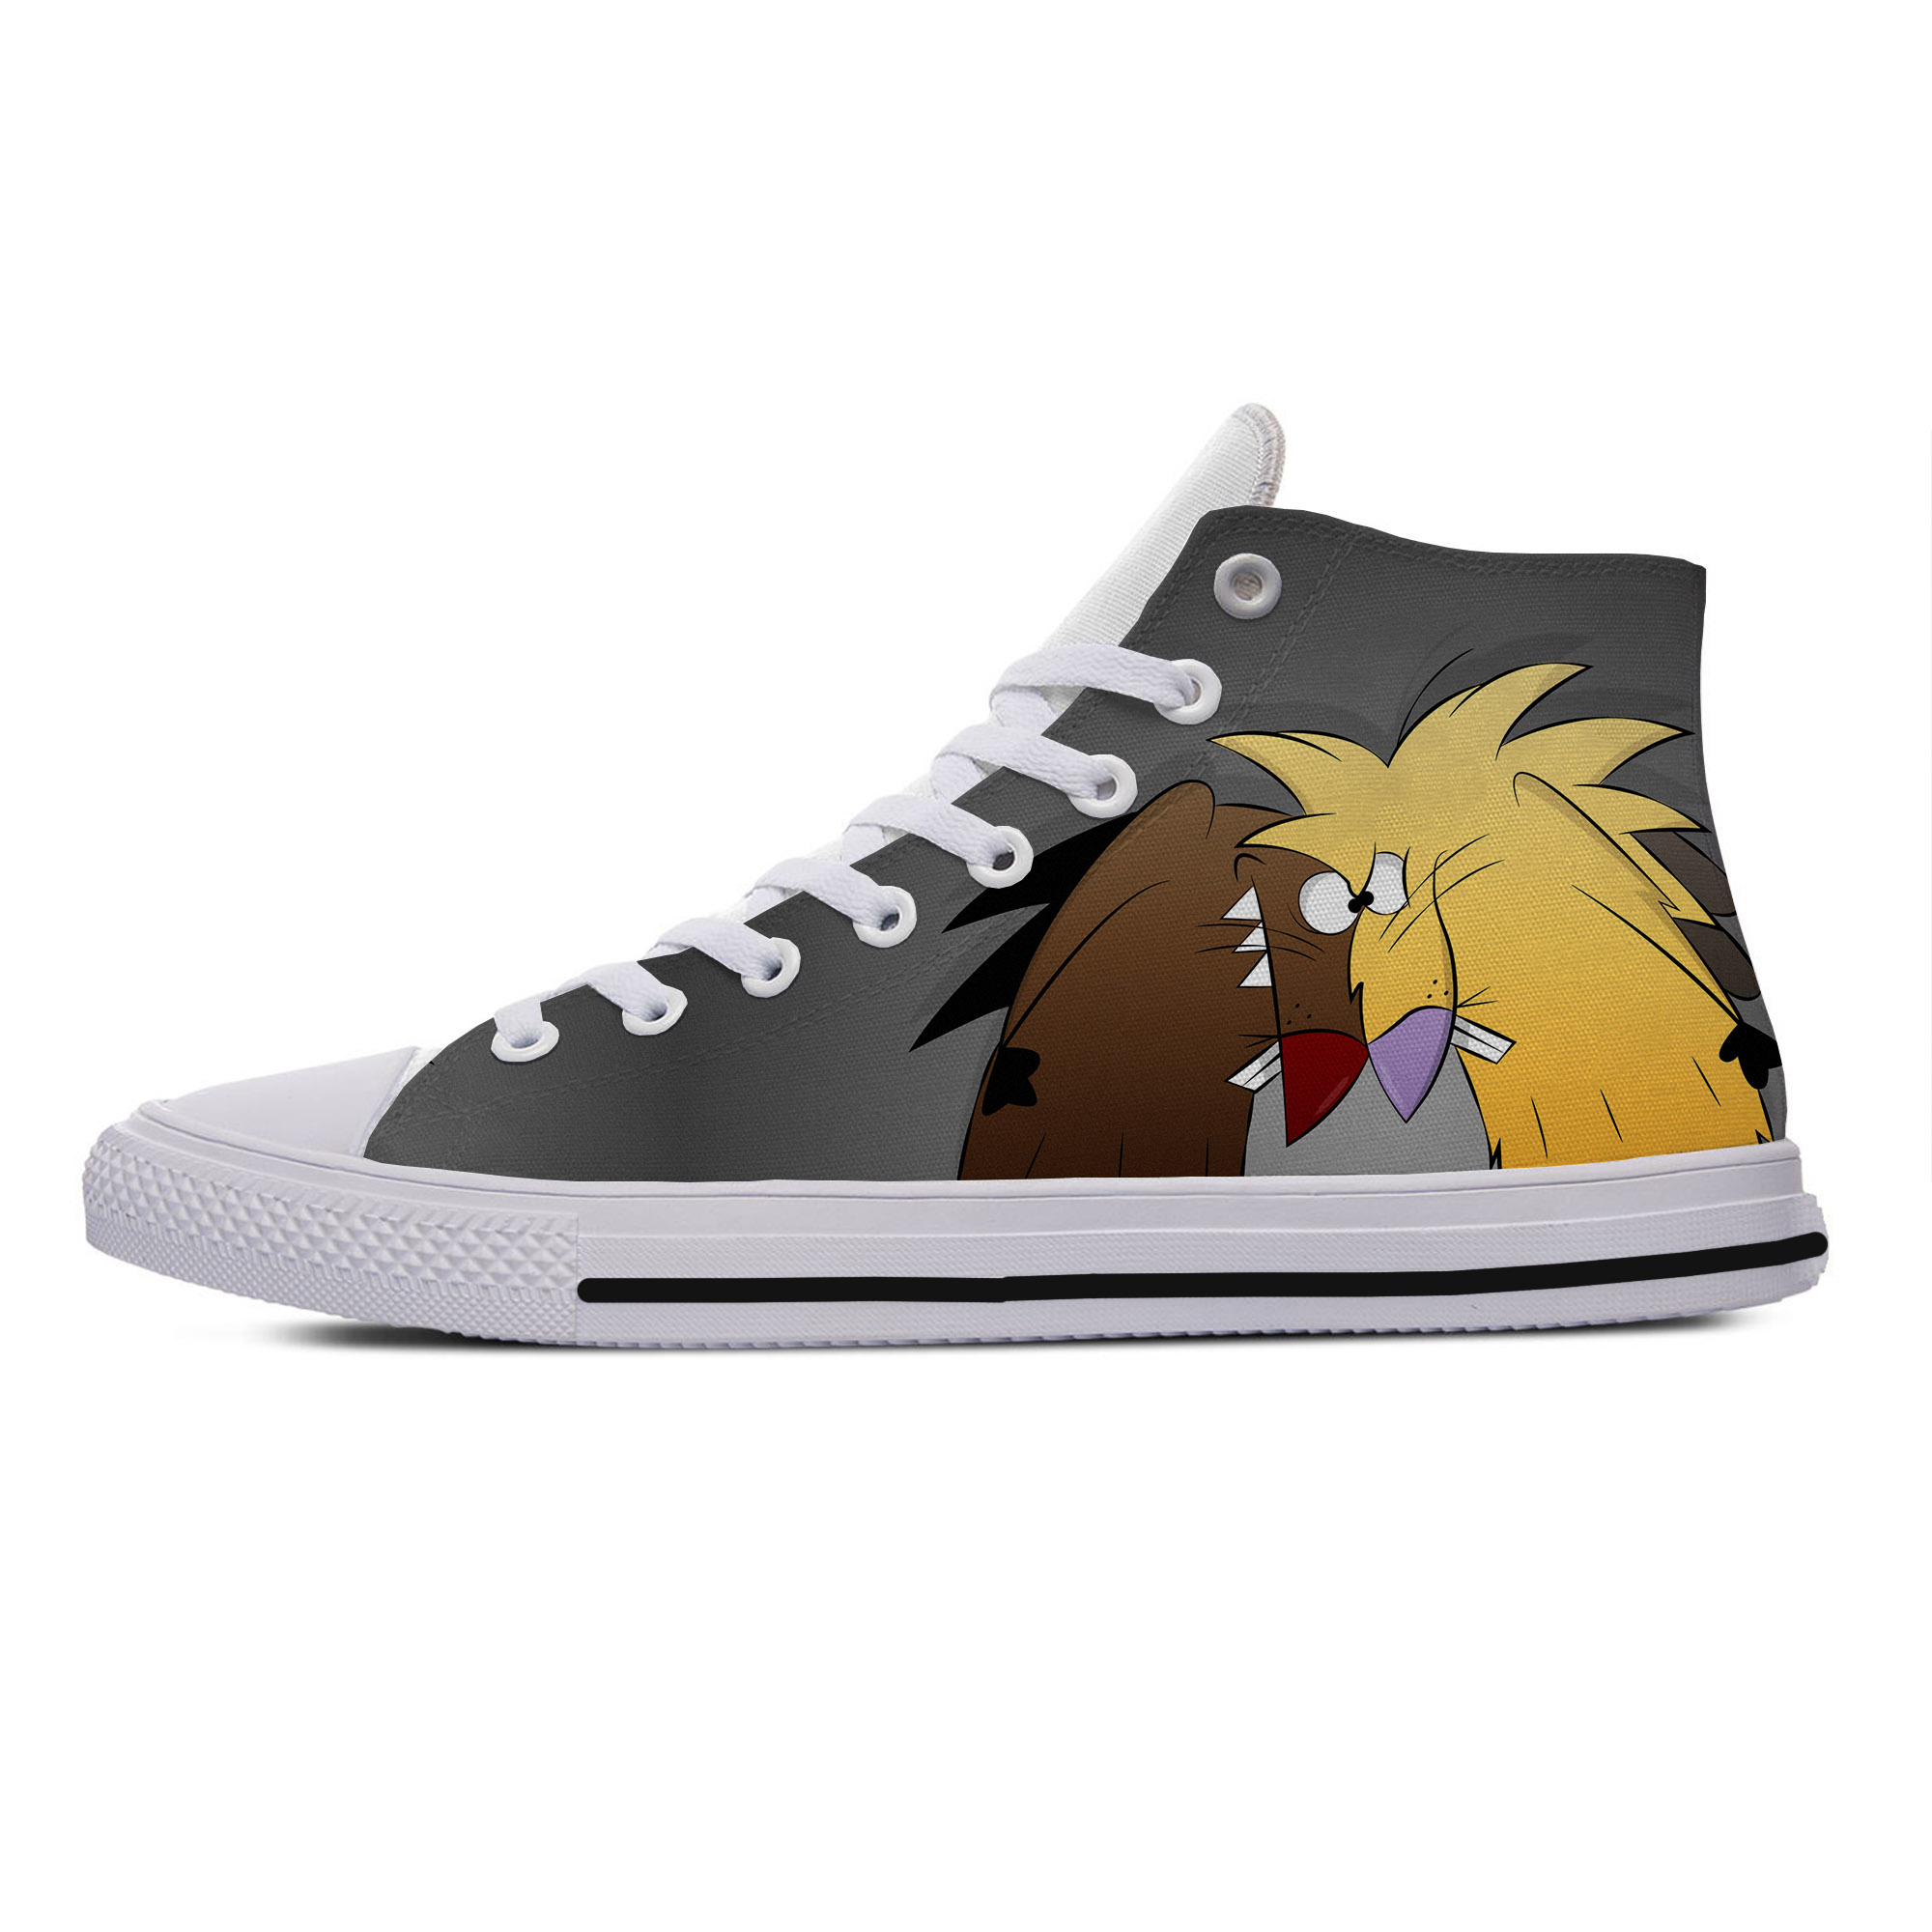 2019 Hot Latest The Angry Beavers Classic Shoes Man/Waman Lightweight Fashion Breathable Casual Canvas Shoes High Help Sneakers